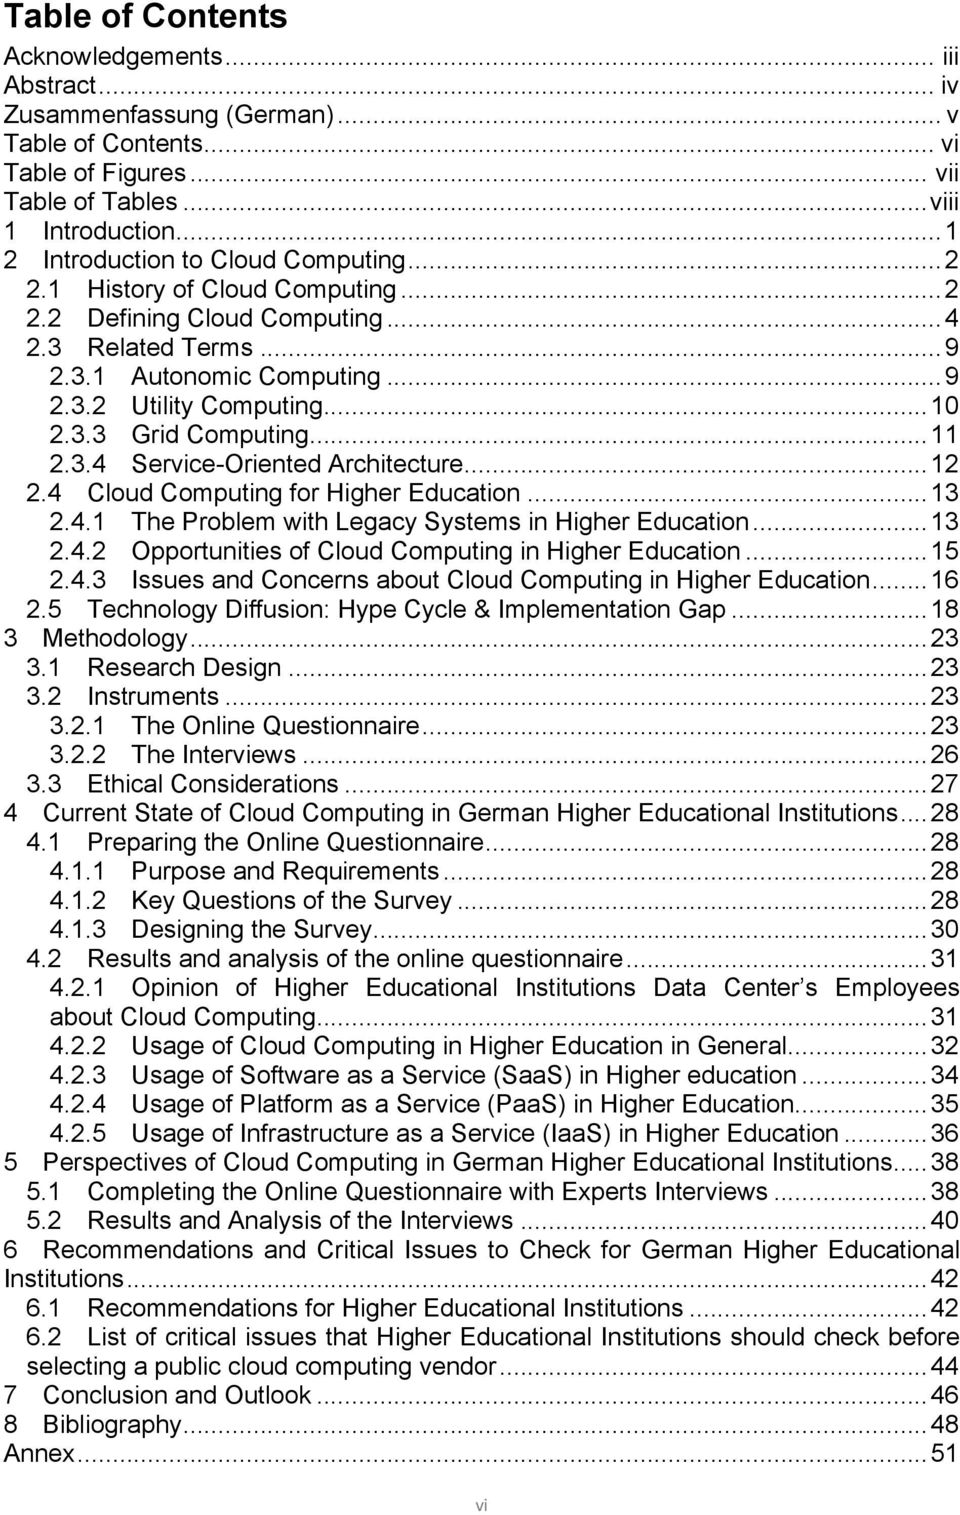 3.3 Grid Computing... 11 2.3.4 Service-Oriented Architecture... 12 2.4 Cloud Computing for Higher Education... 13 2.4.1 The Problem with Legacy Systems in Higher Education... 13 2.4.2 Opportunities of Cloud Computing in Higher Education.